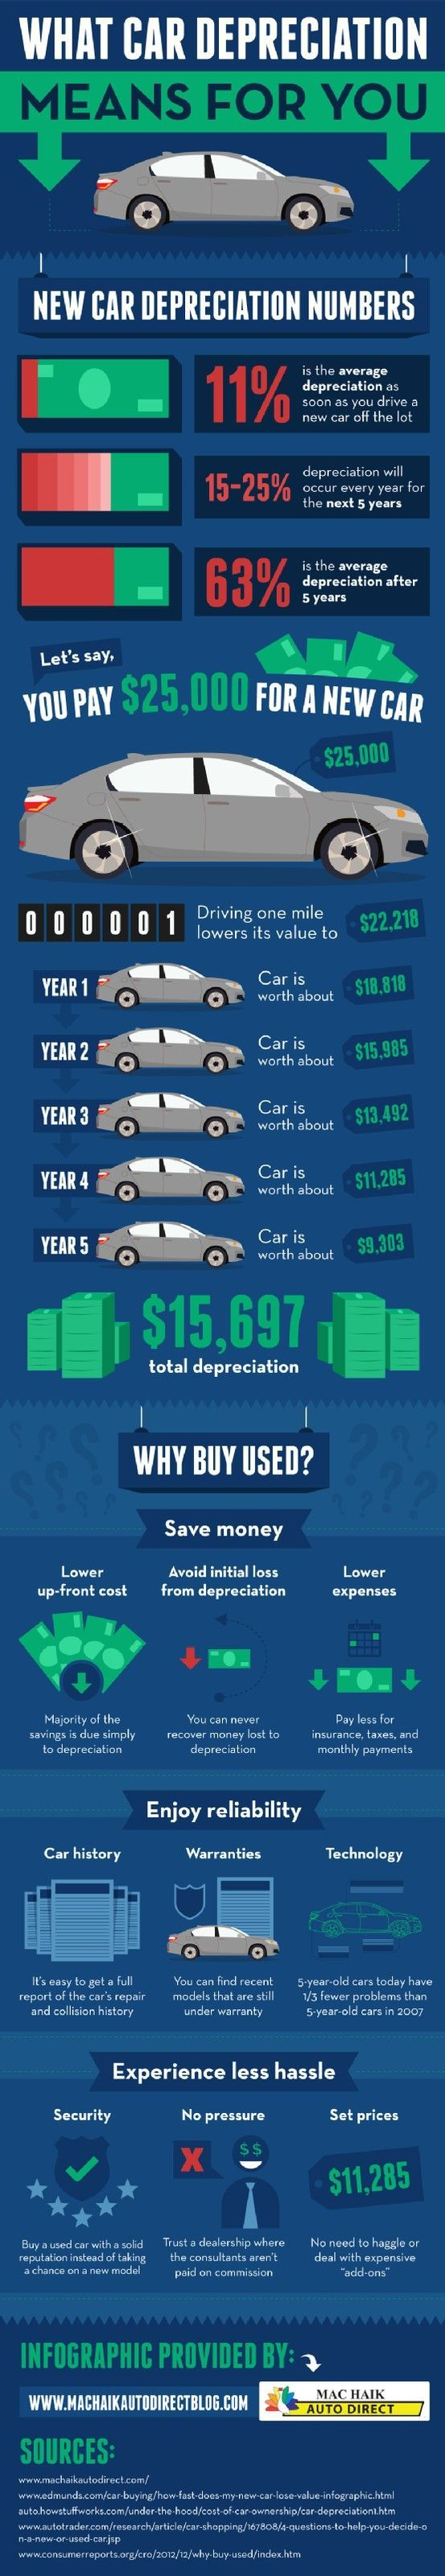 Dave ramsey endorsed car dealer - A Pre Owned Car Has A Lower Upfront Cost Than A New Car These